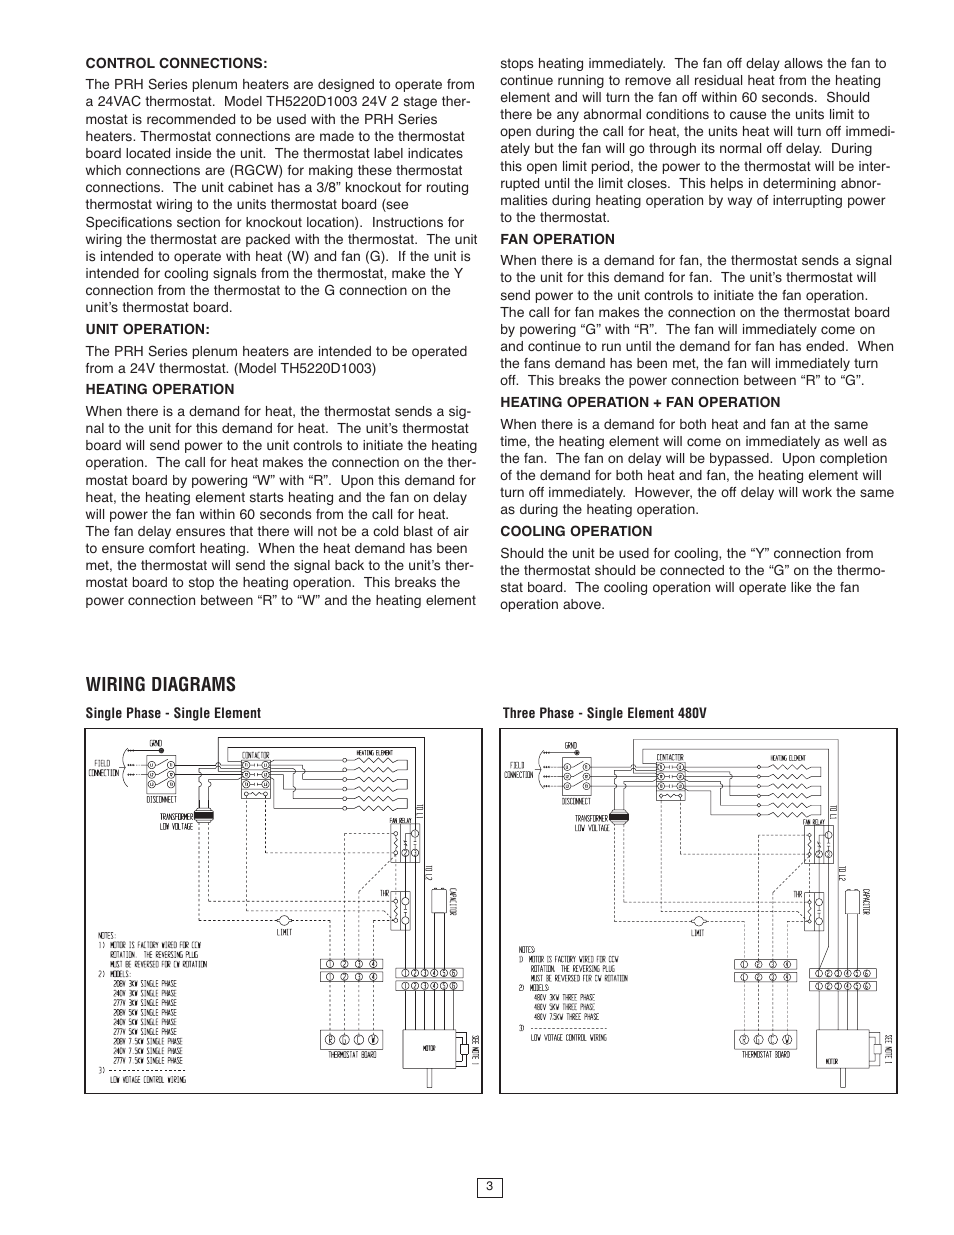 wiring diagrams qmark msph plenum rated unit heater user manual rh manualsdir com